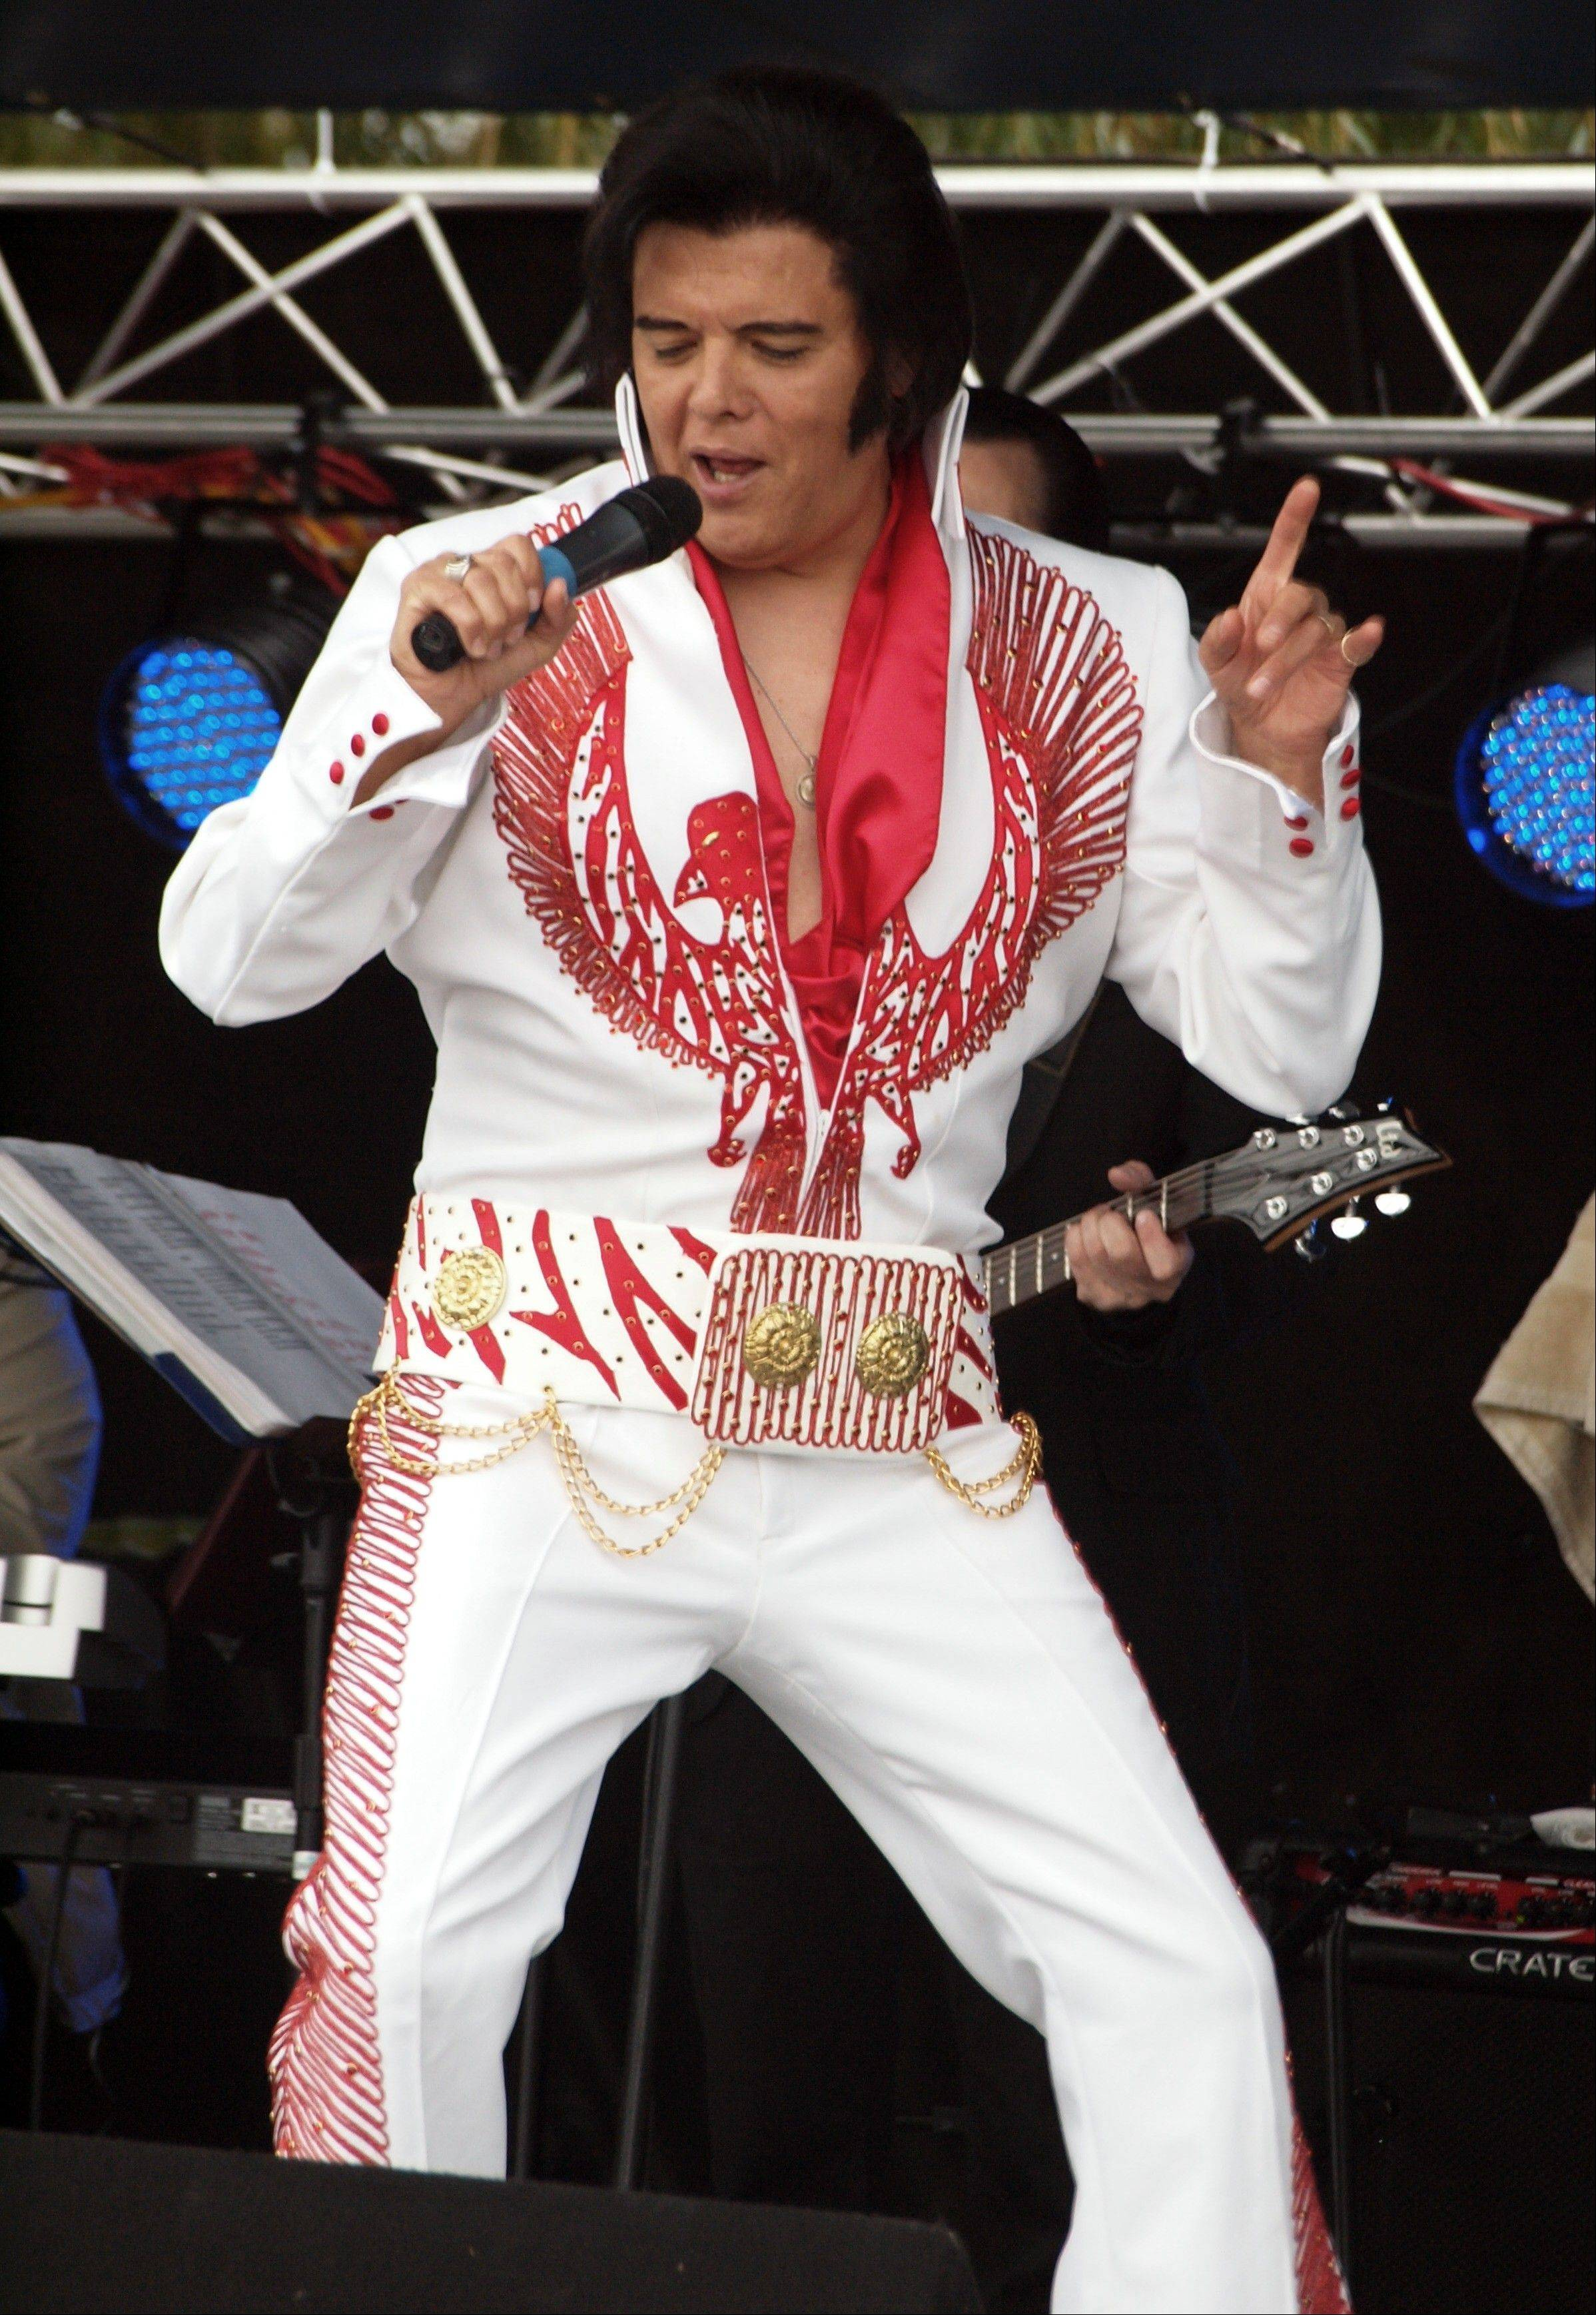 Elvis Presley impersonator Rick Saucedo of West Chicago joins the Elvis Tribute Artist Spectacular on Friday, Jan. 6, at the Paramount Theatre in Aurora.